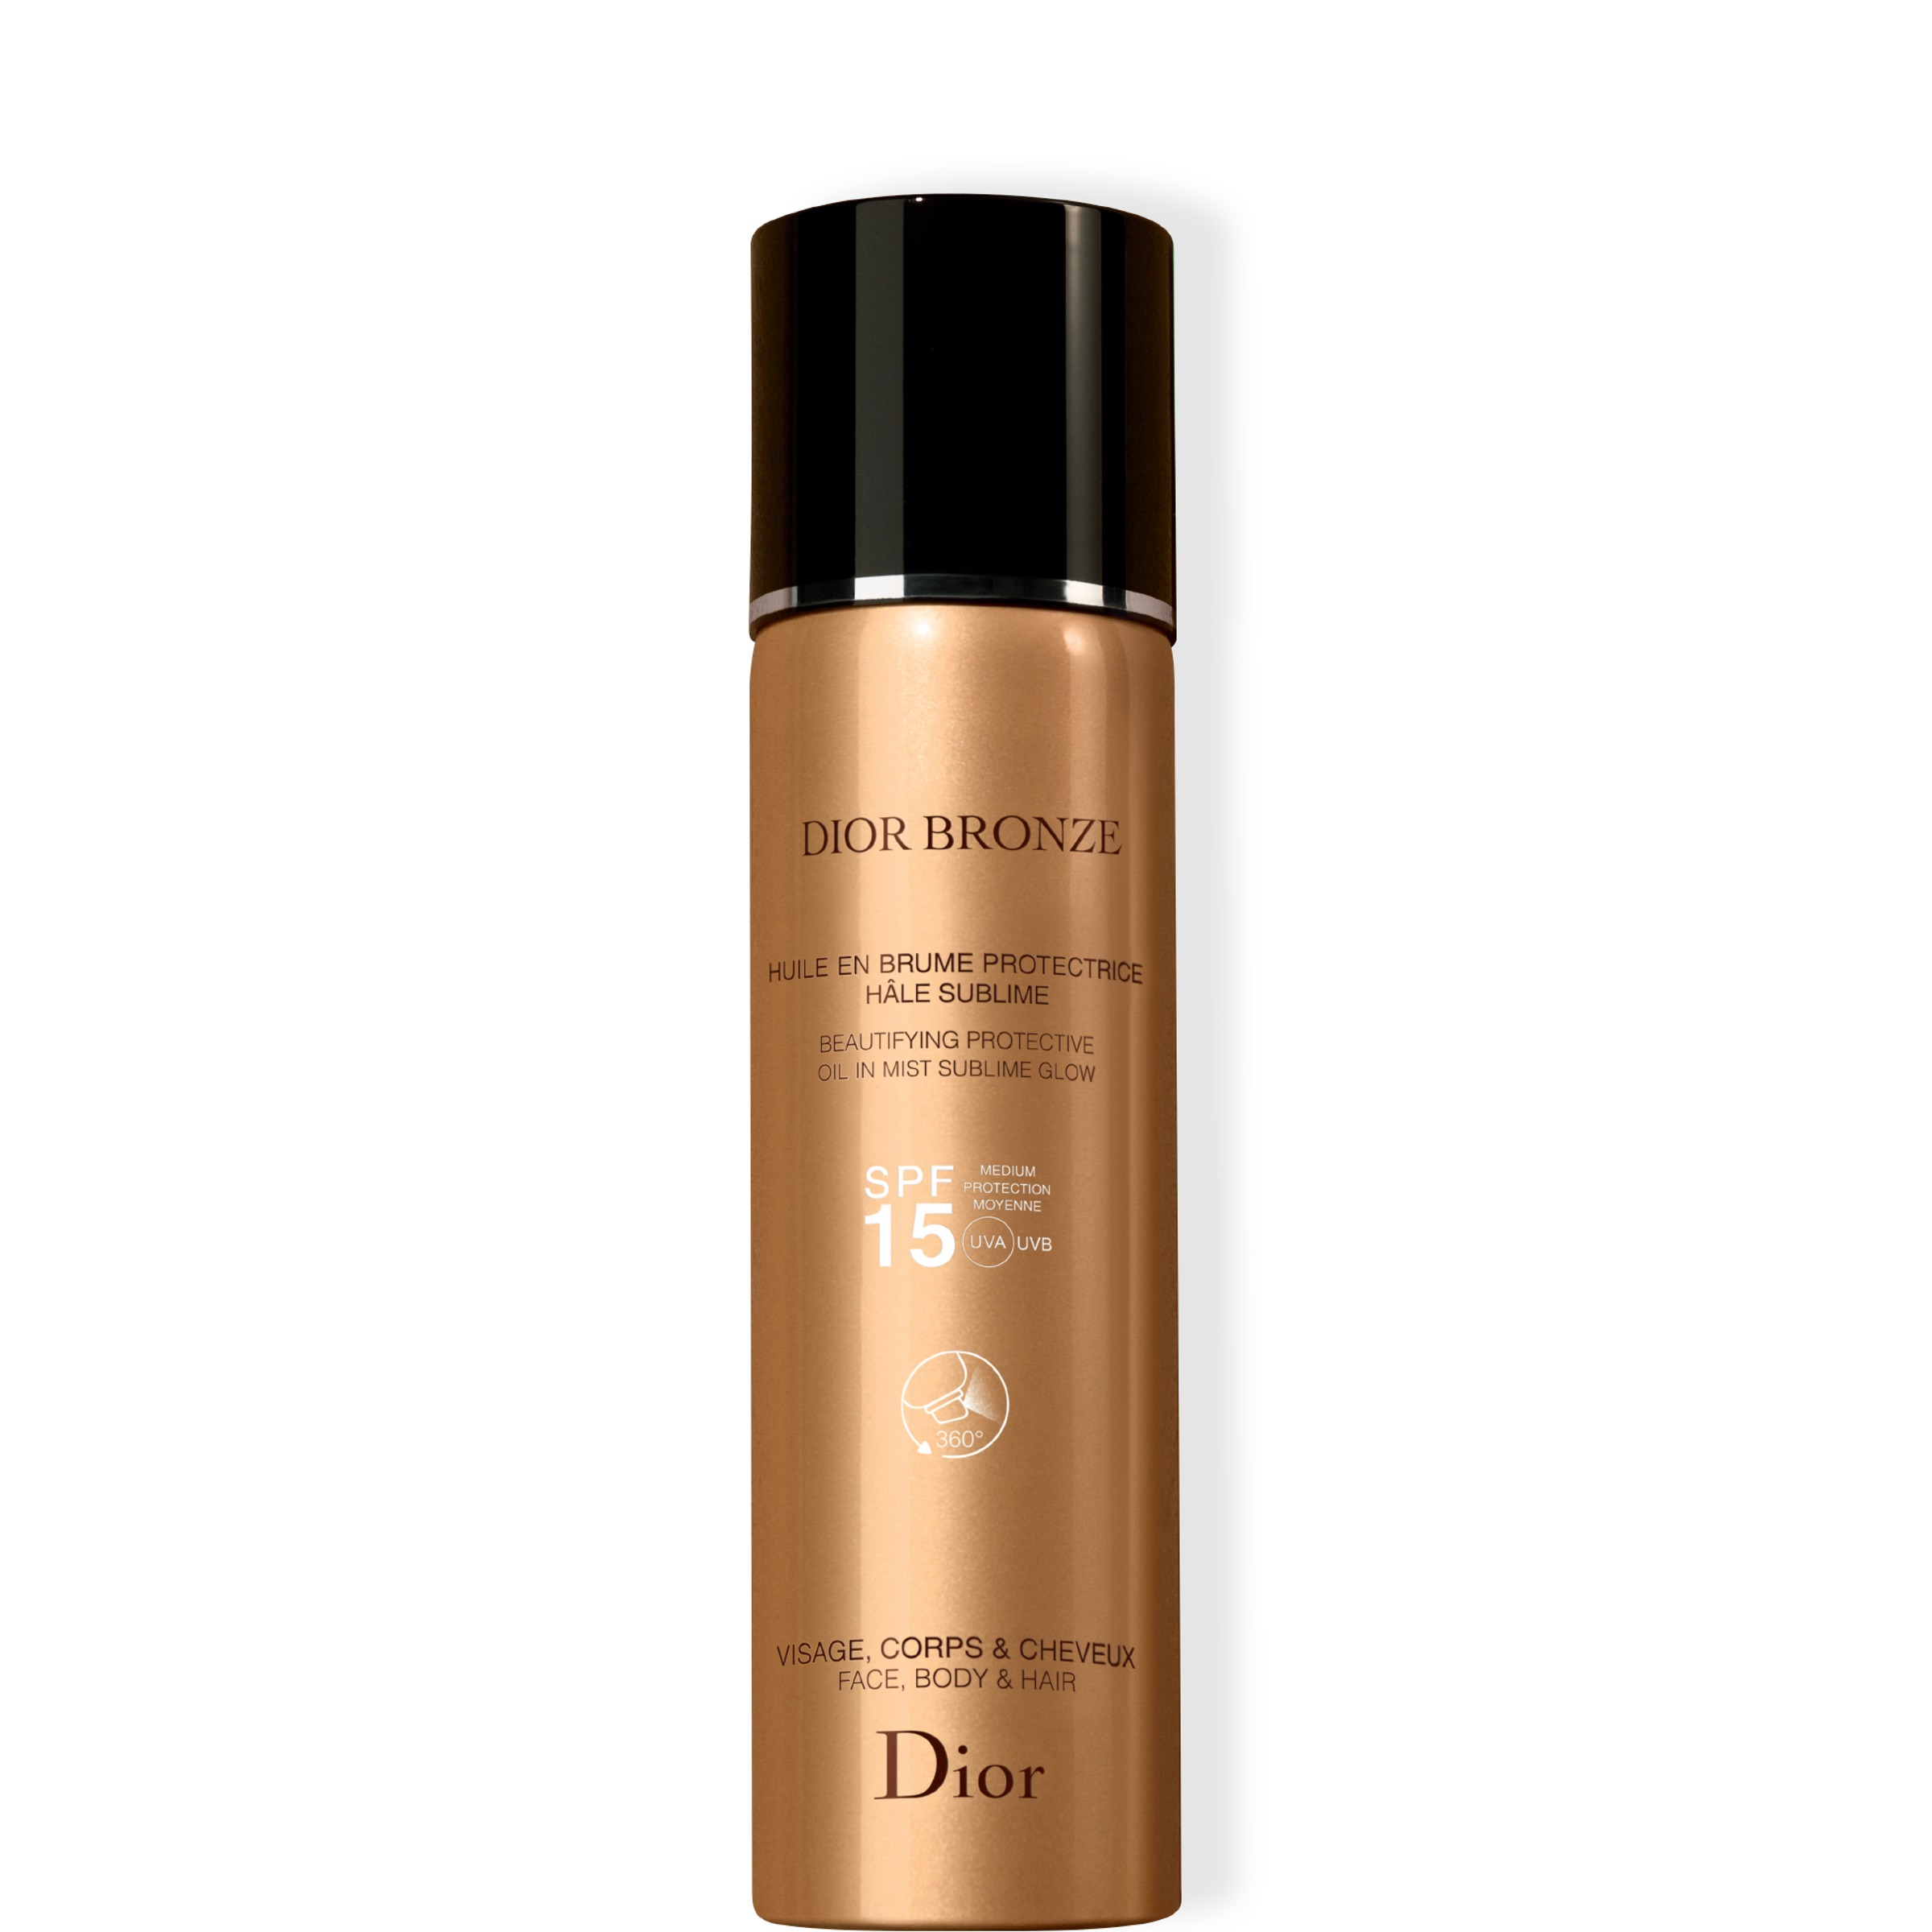 Bronze Beautifying Protective Oil-in-Mist SPF 15